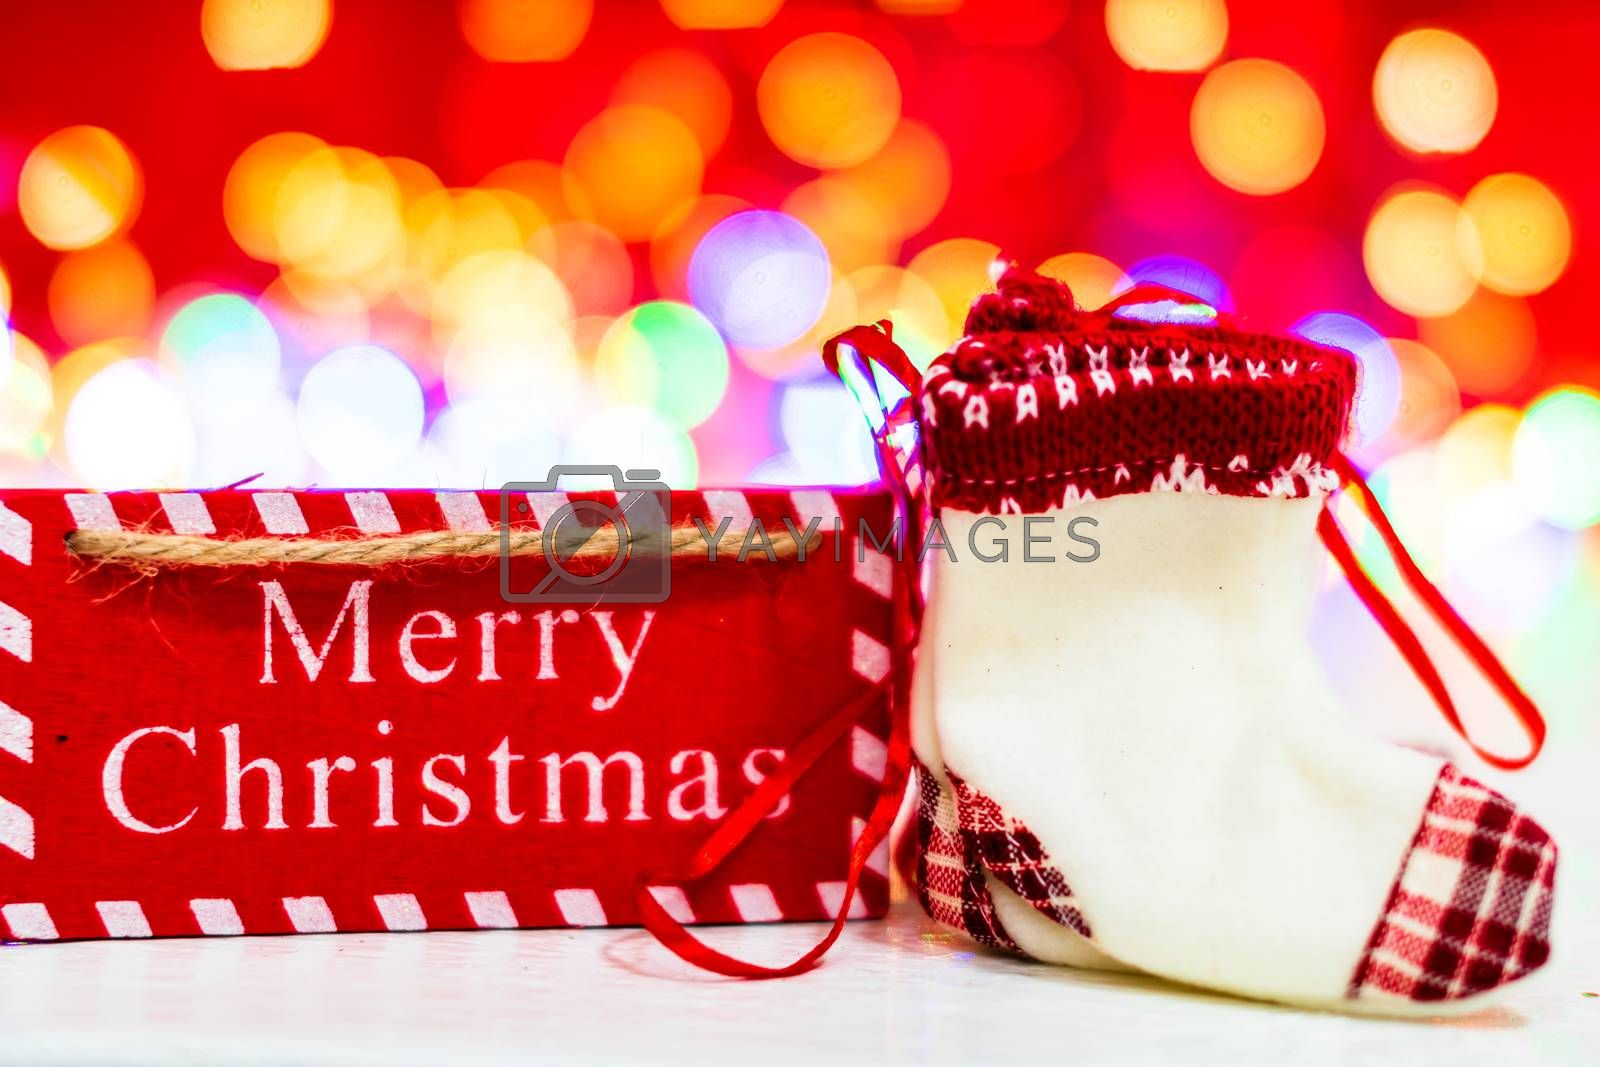 Merry Christmas text wooden sign, decorations and ornaments in a colorful Christmas composition.